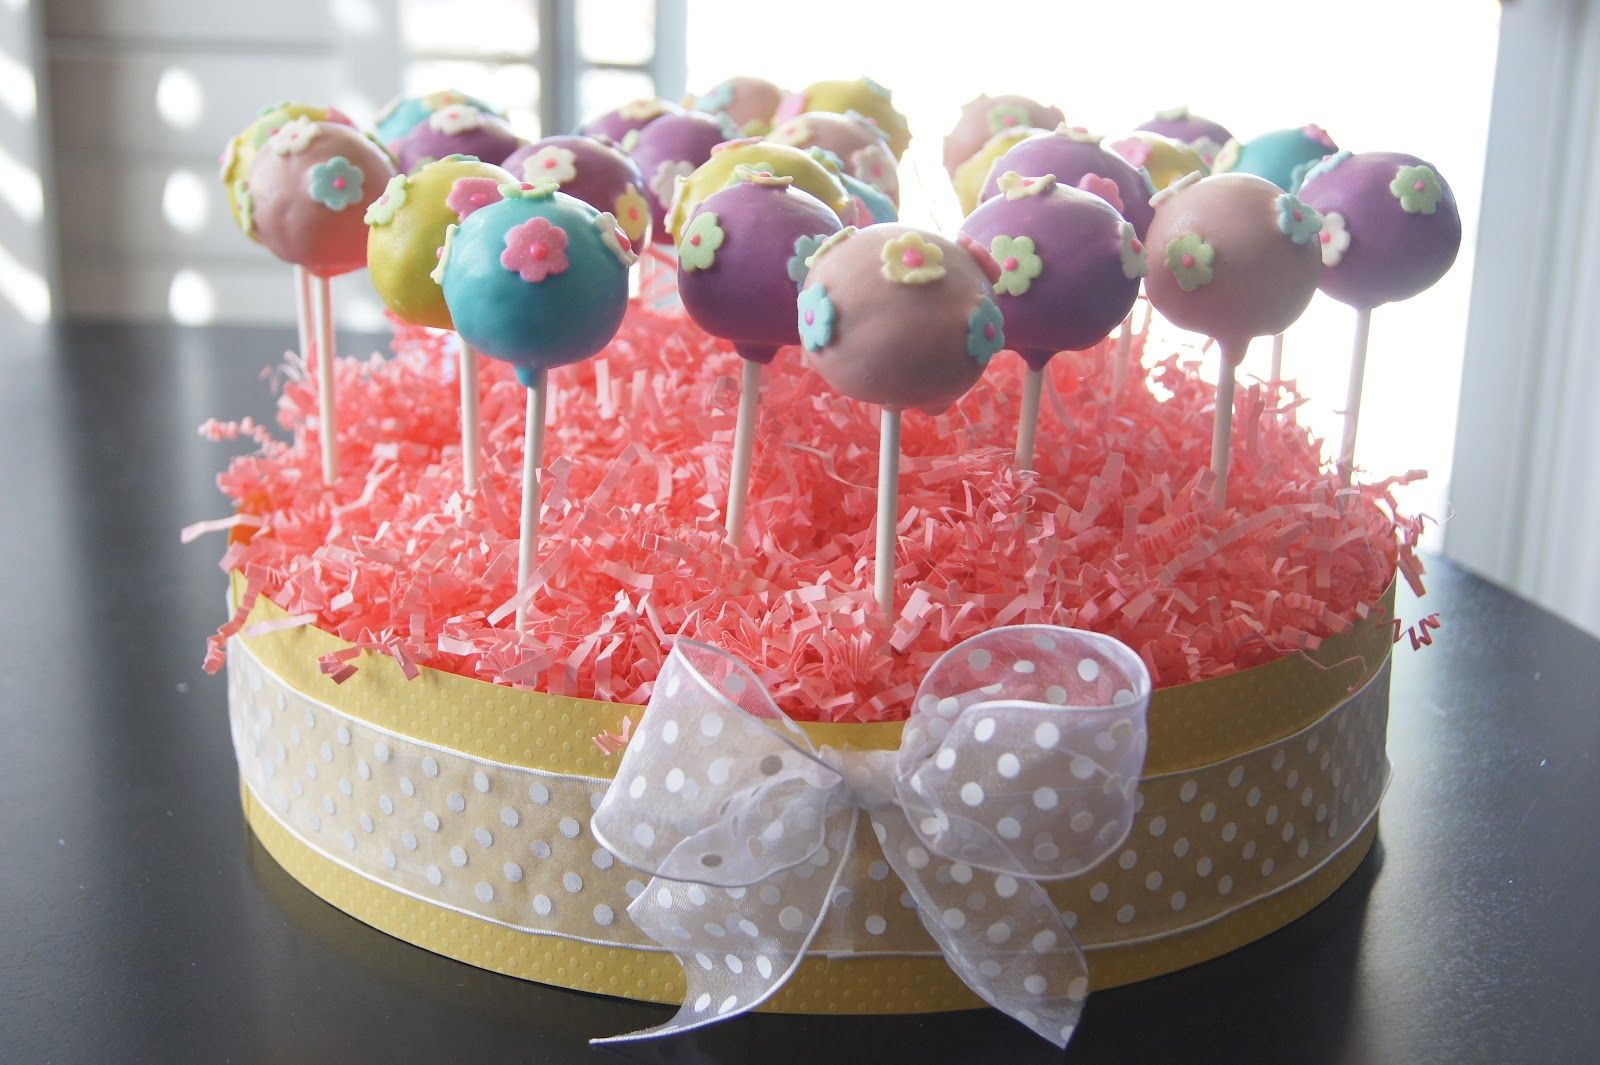 Tinkerbell Themed Party Cake Pops Diy Cake Pops Cake Pop Stands